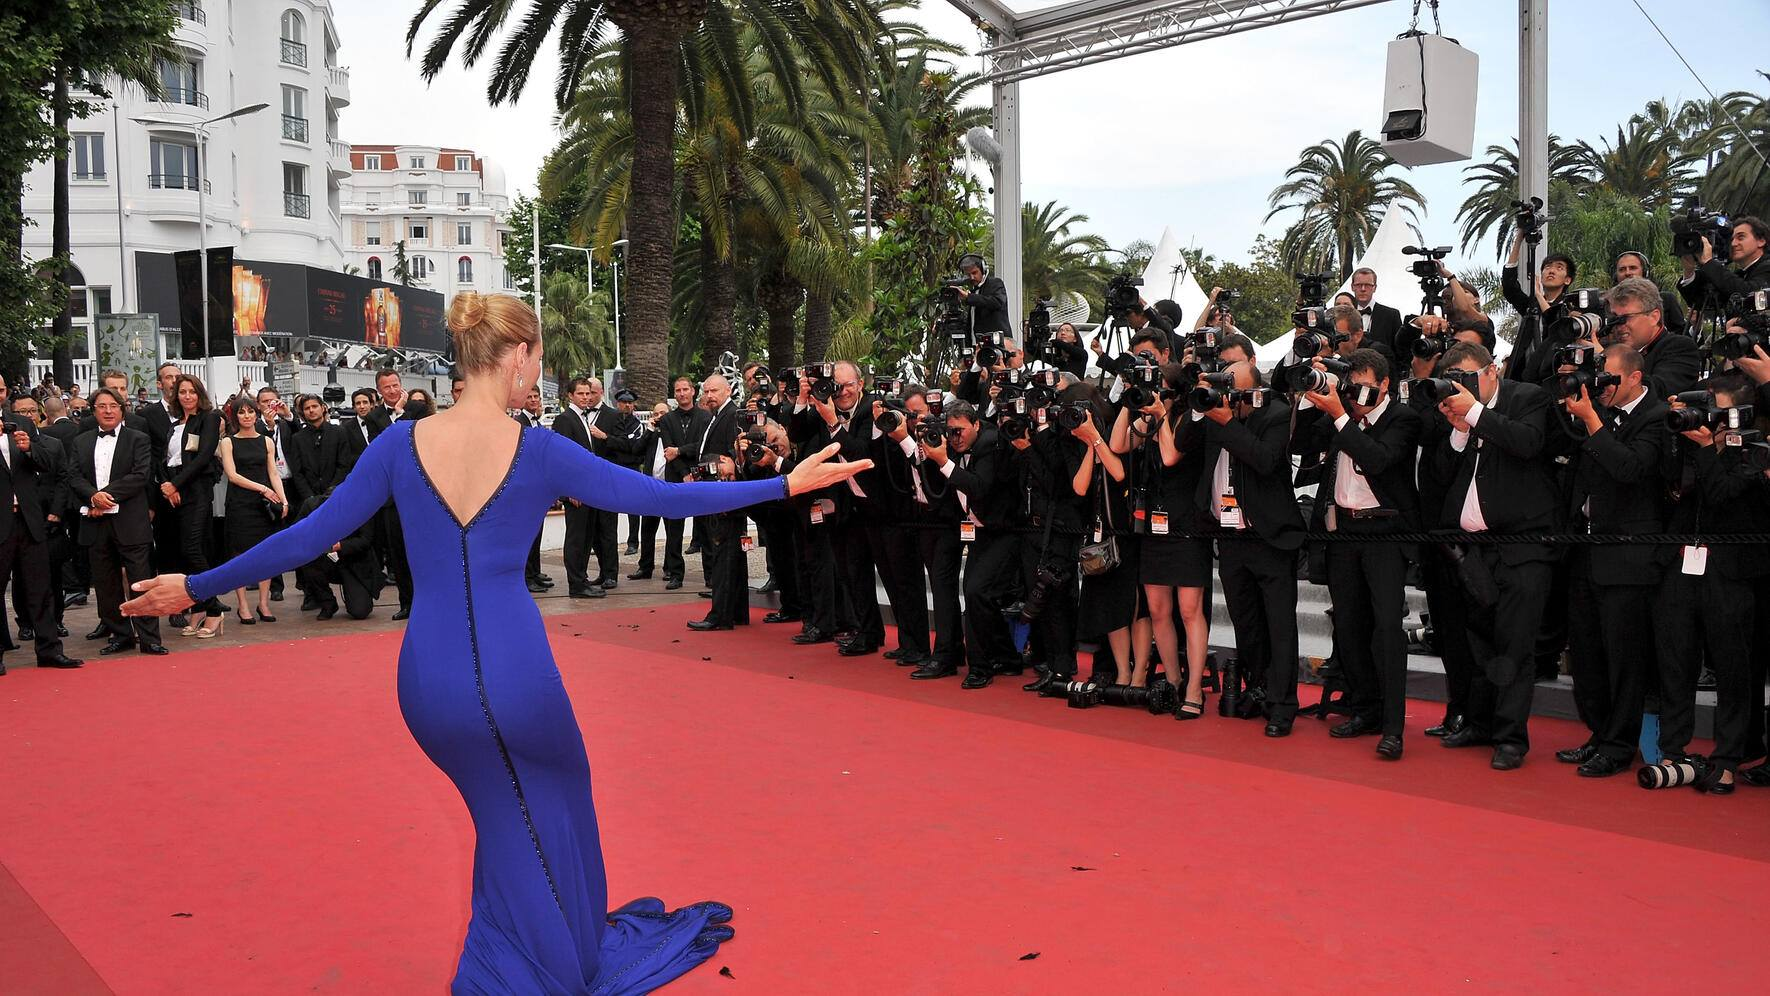 Filmfestival Cannes 2011 Abschlussabend Uma Thurman